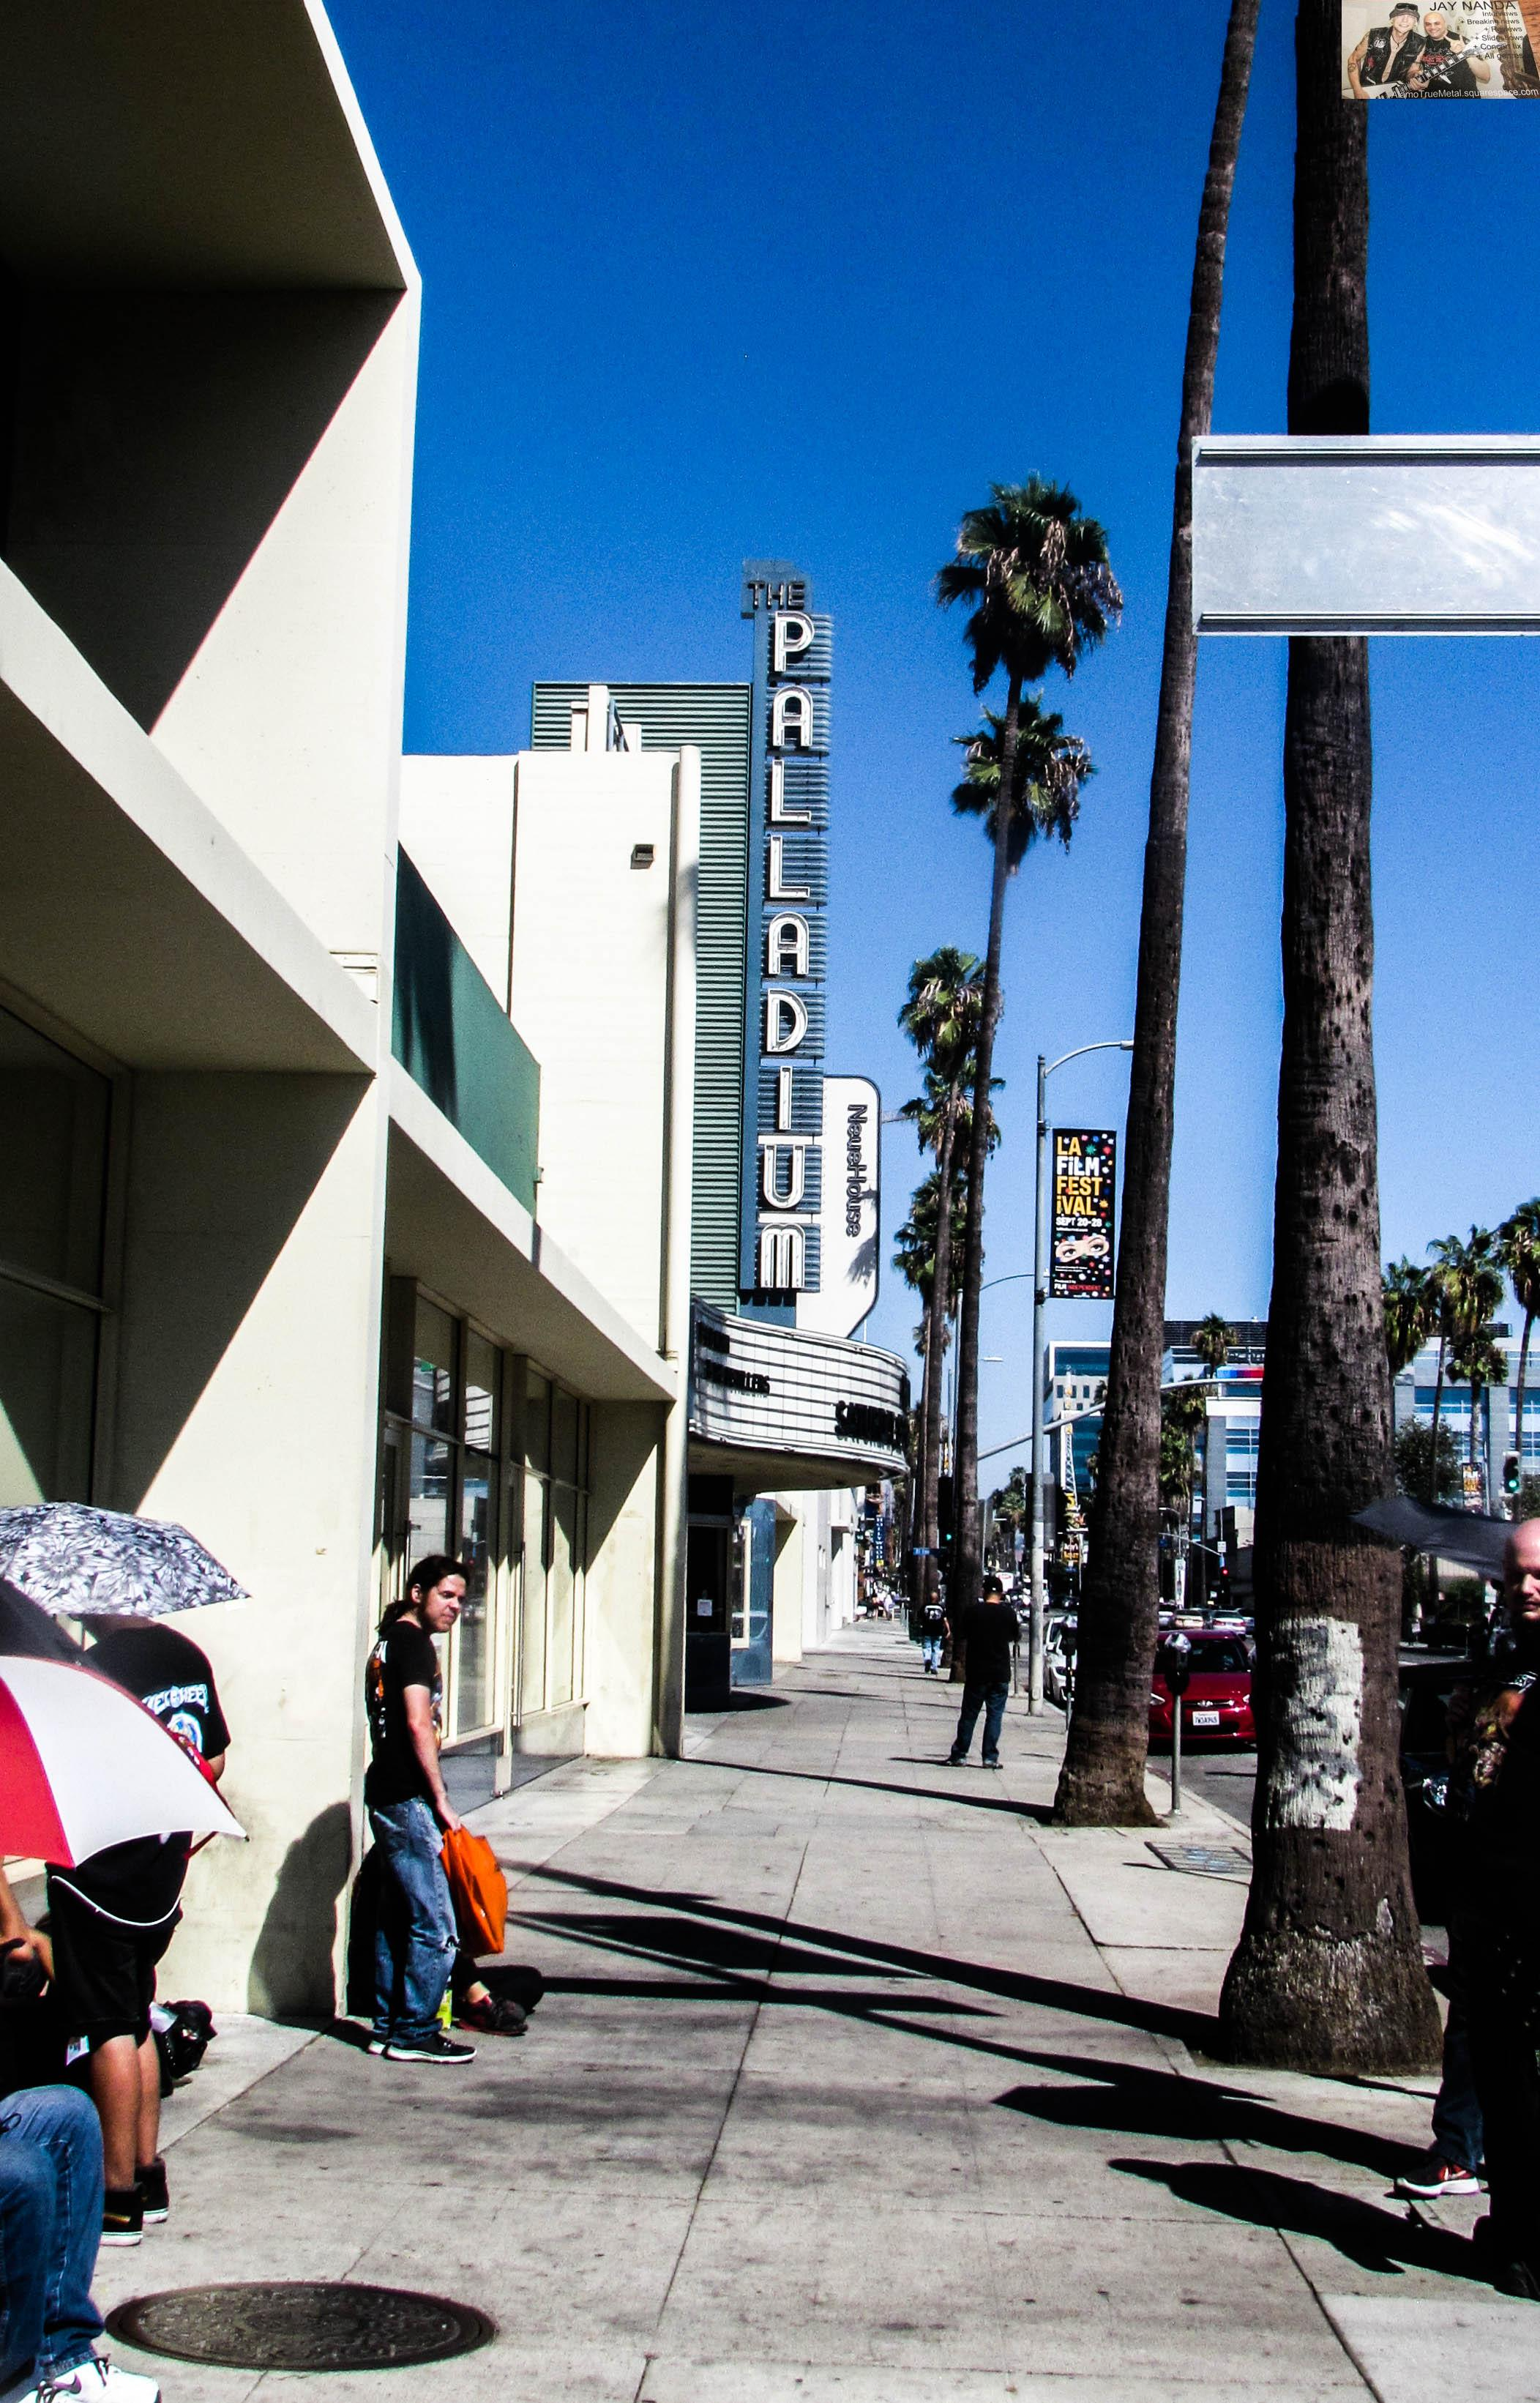 The Palladium, which was opened in part by Frank Sinatra in 1940, sits on Hollywood's Sunset Blvd.